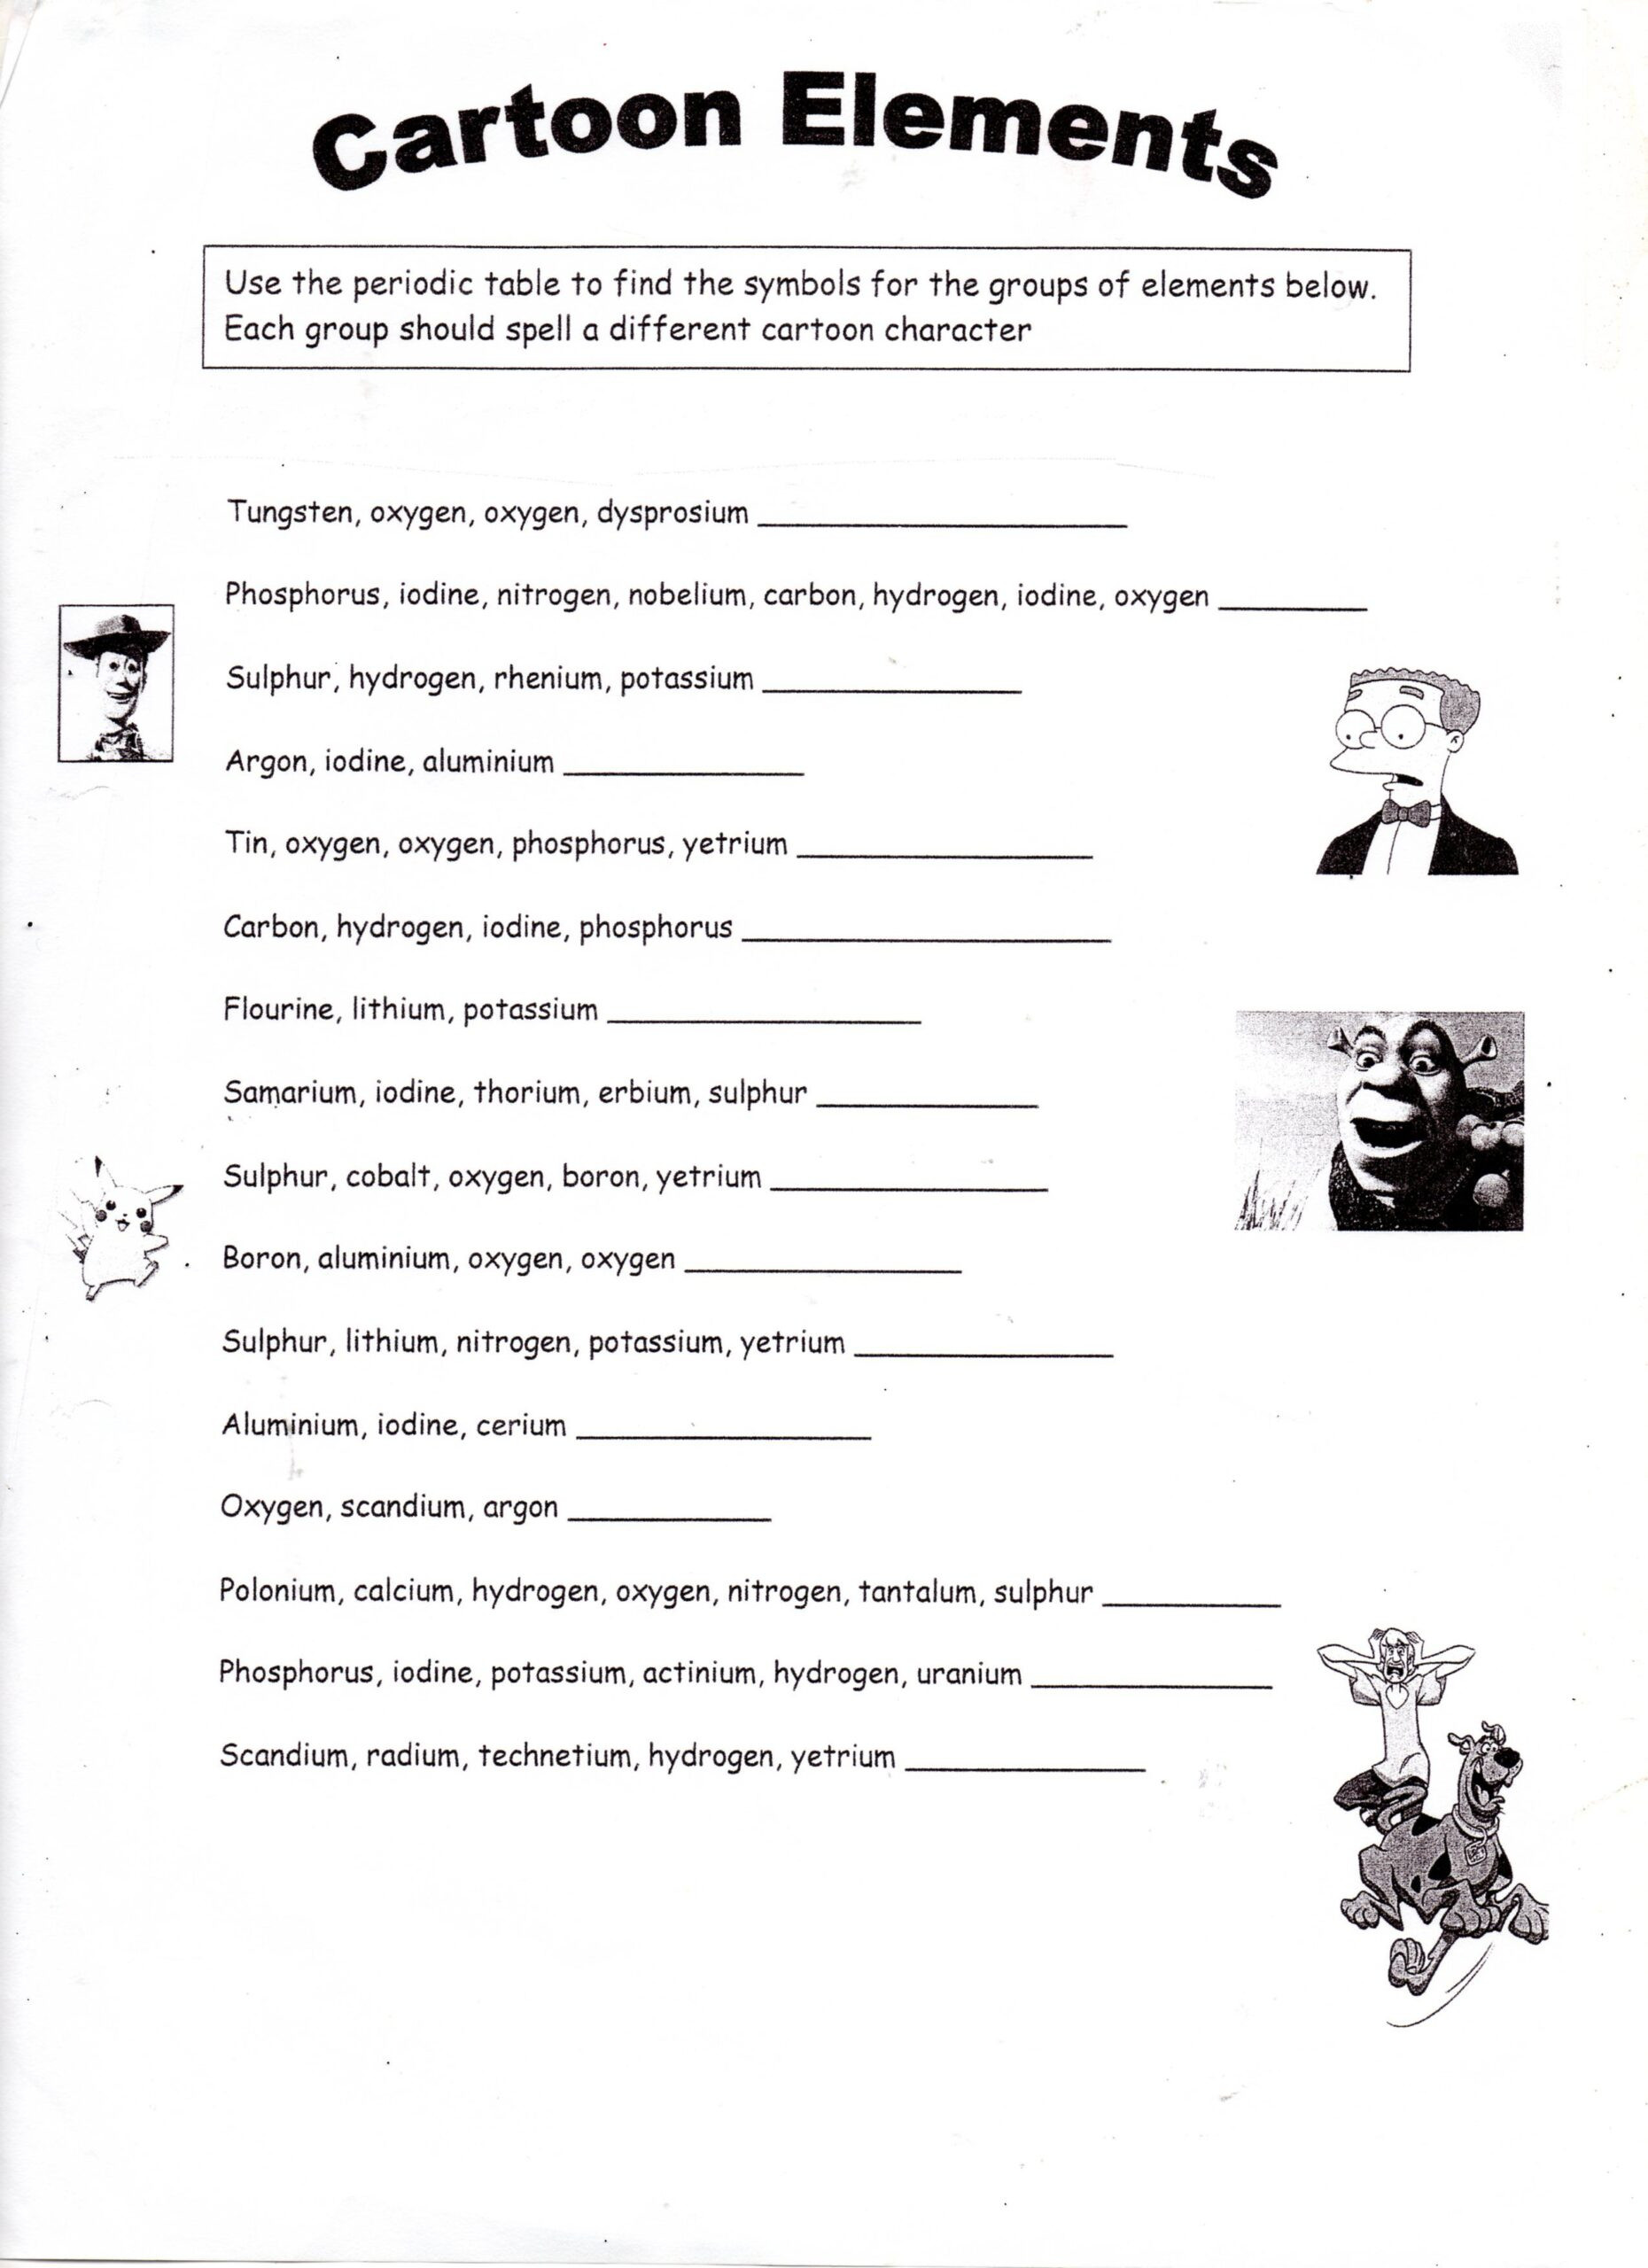 Simple Machine Worksheets Middle School Elements Worksheet Chemistry Worksheets Middle School